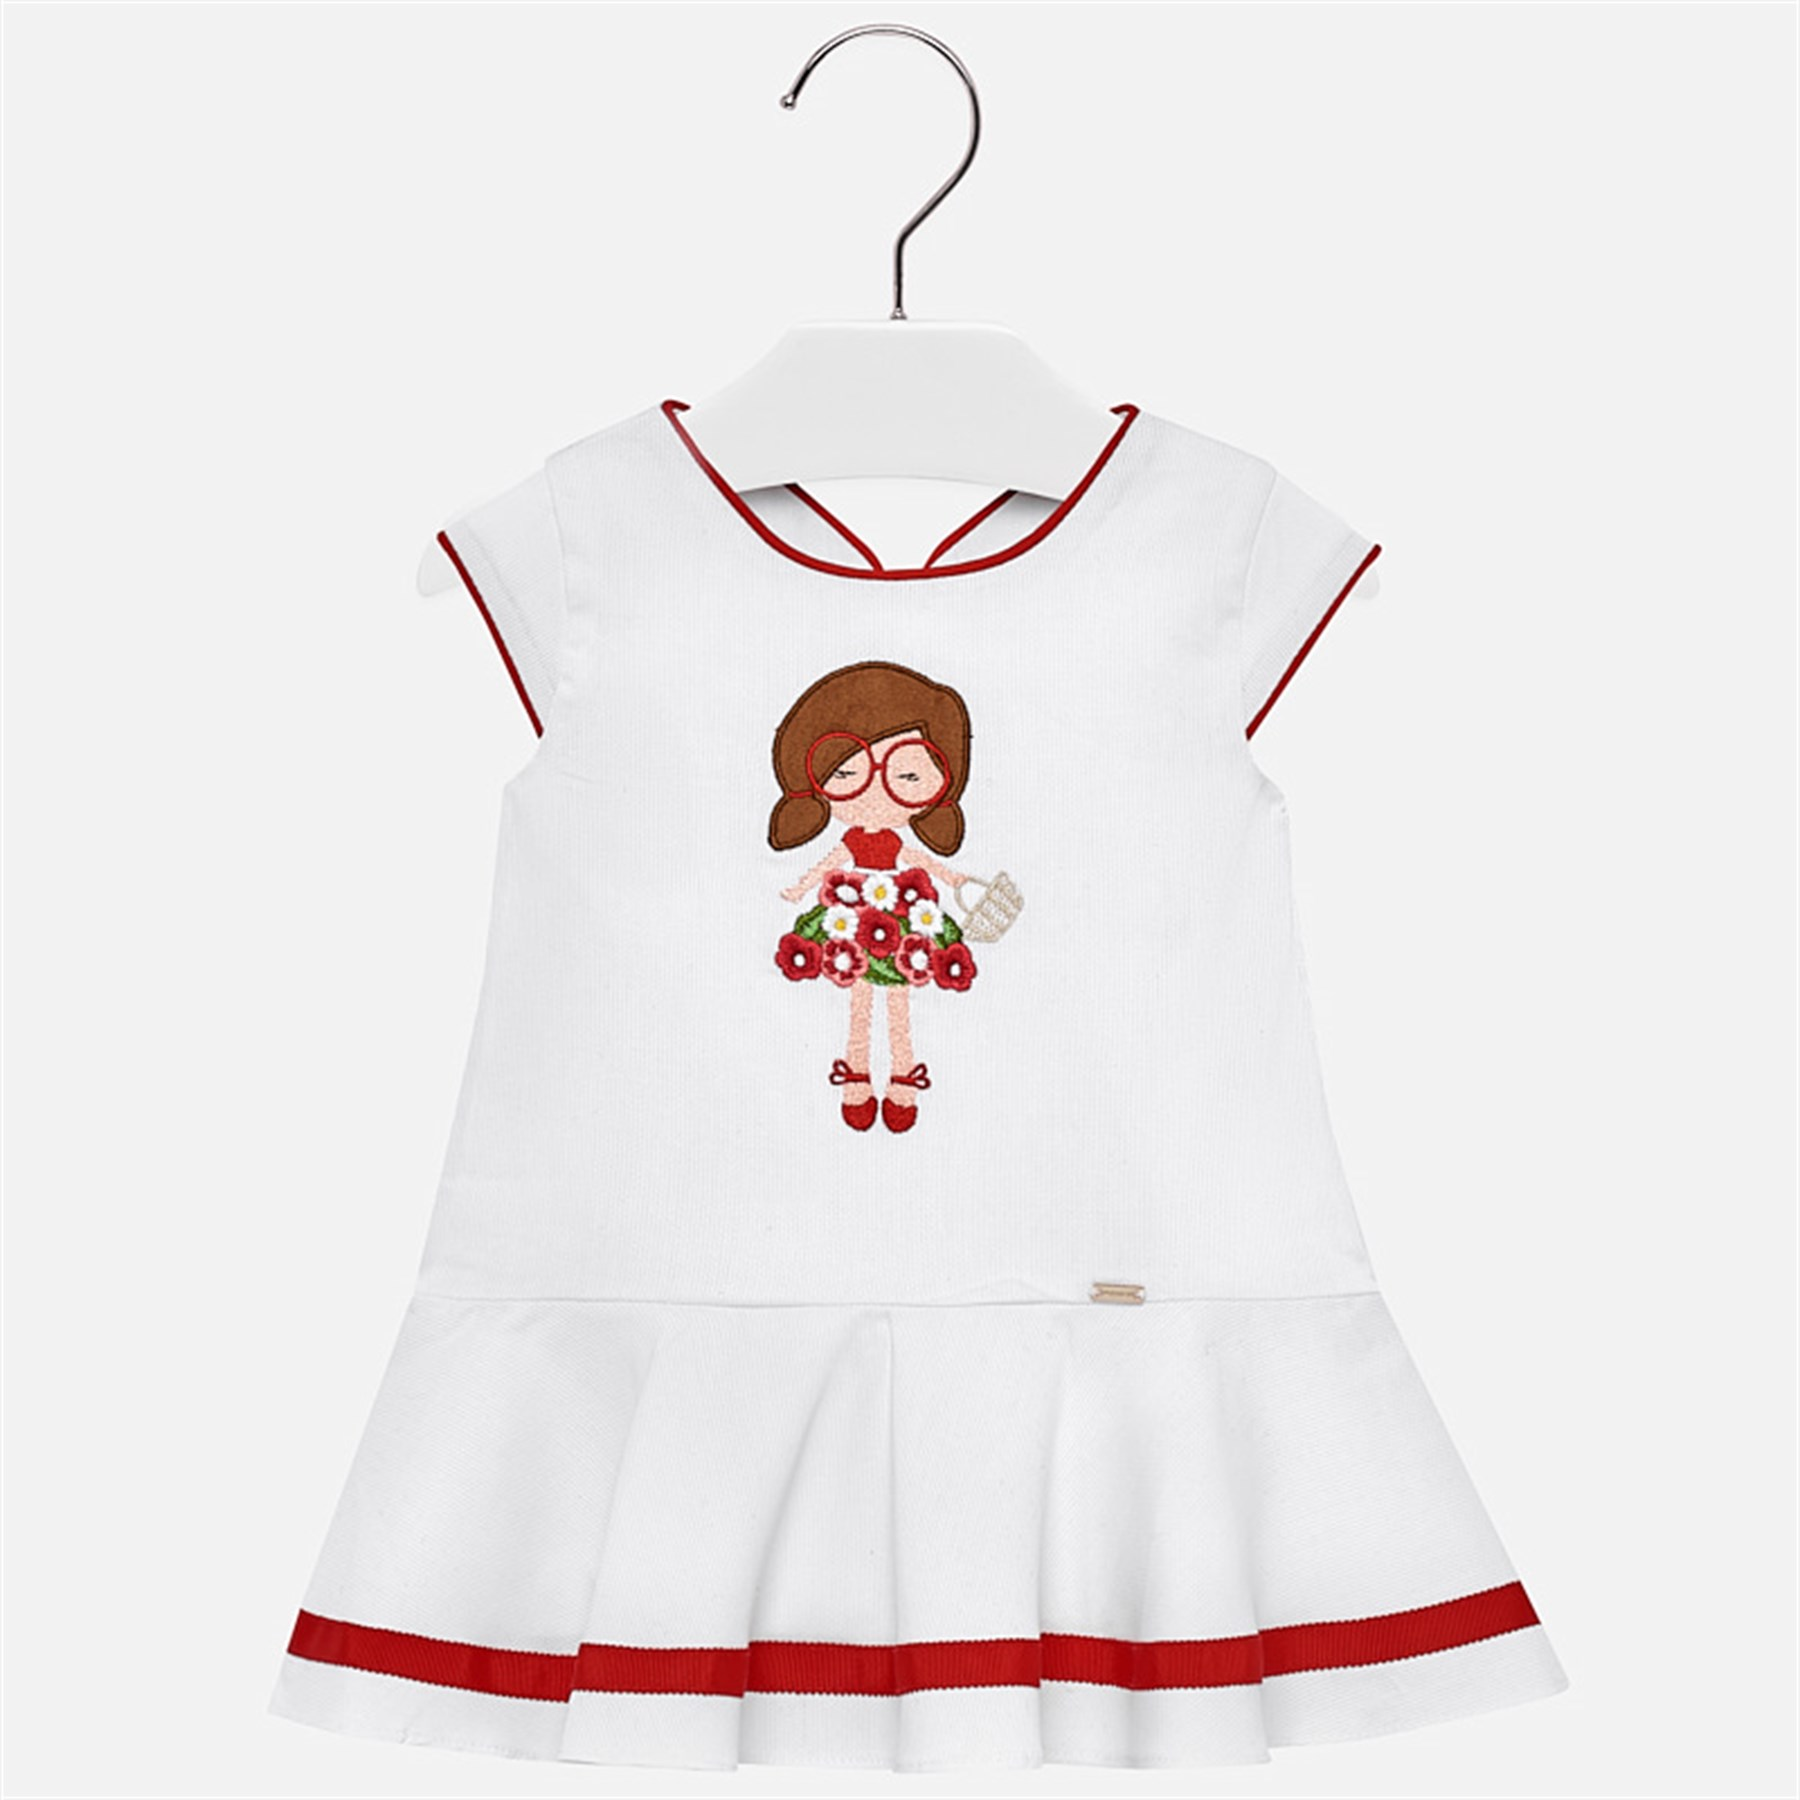 72e20ef0f Mayoral Low waist embroidered dress for baby girl